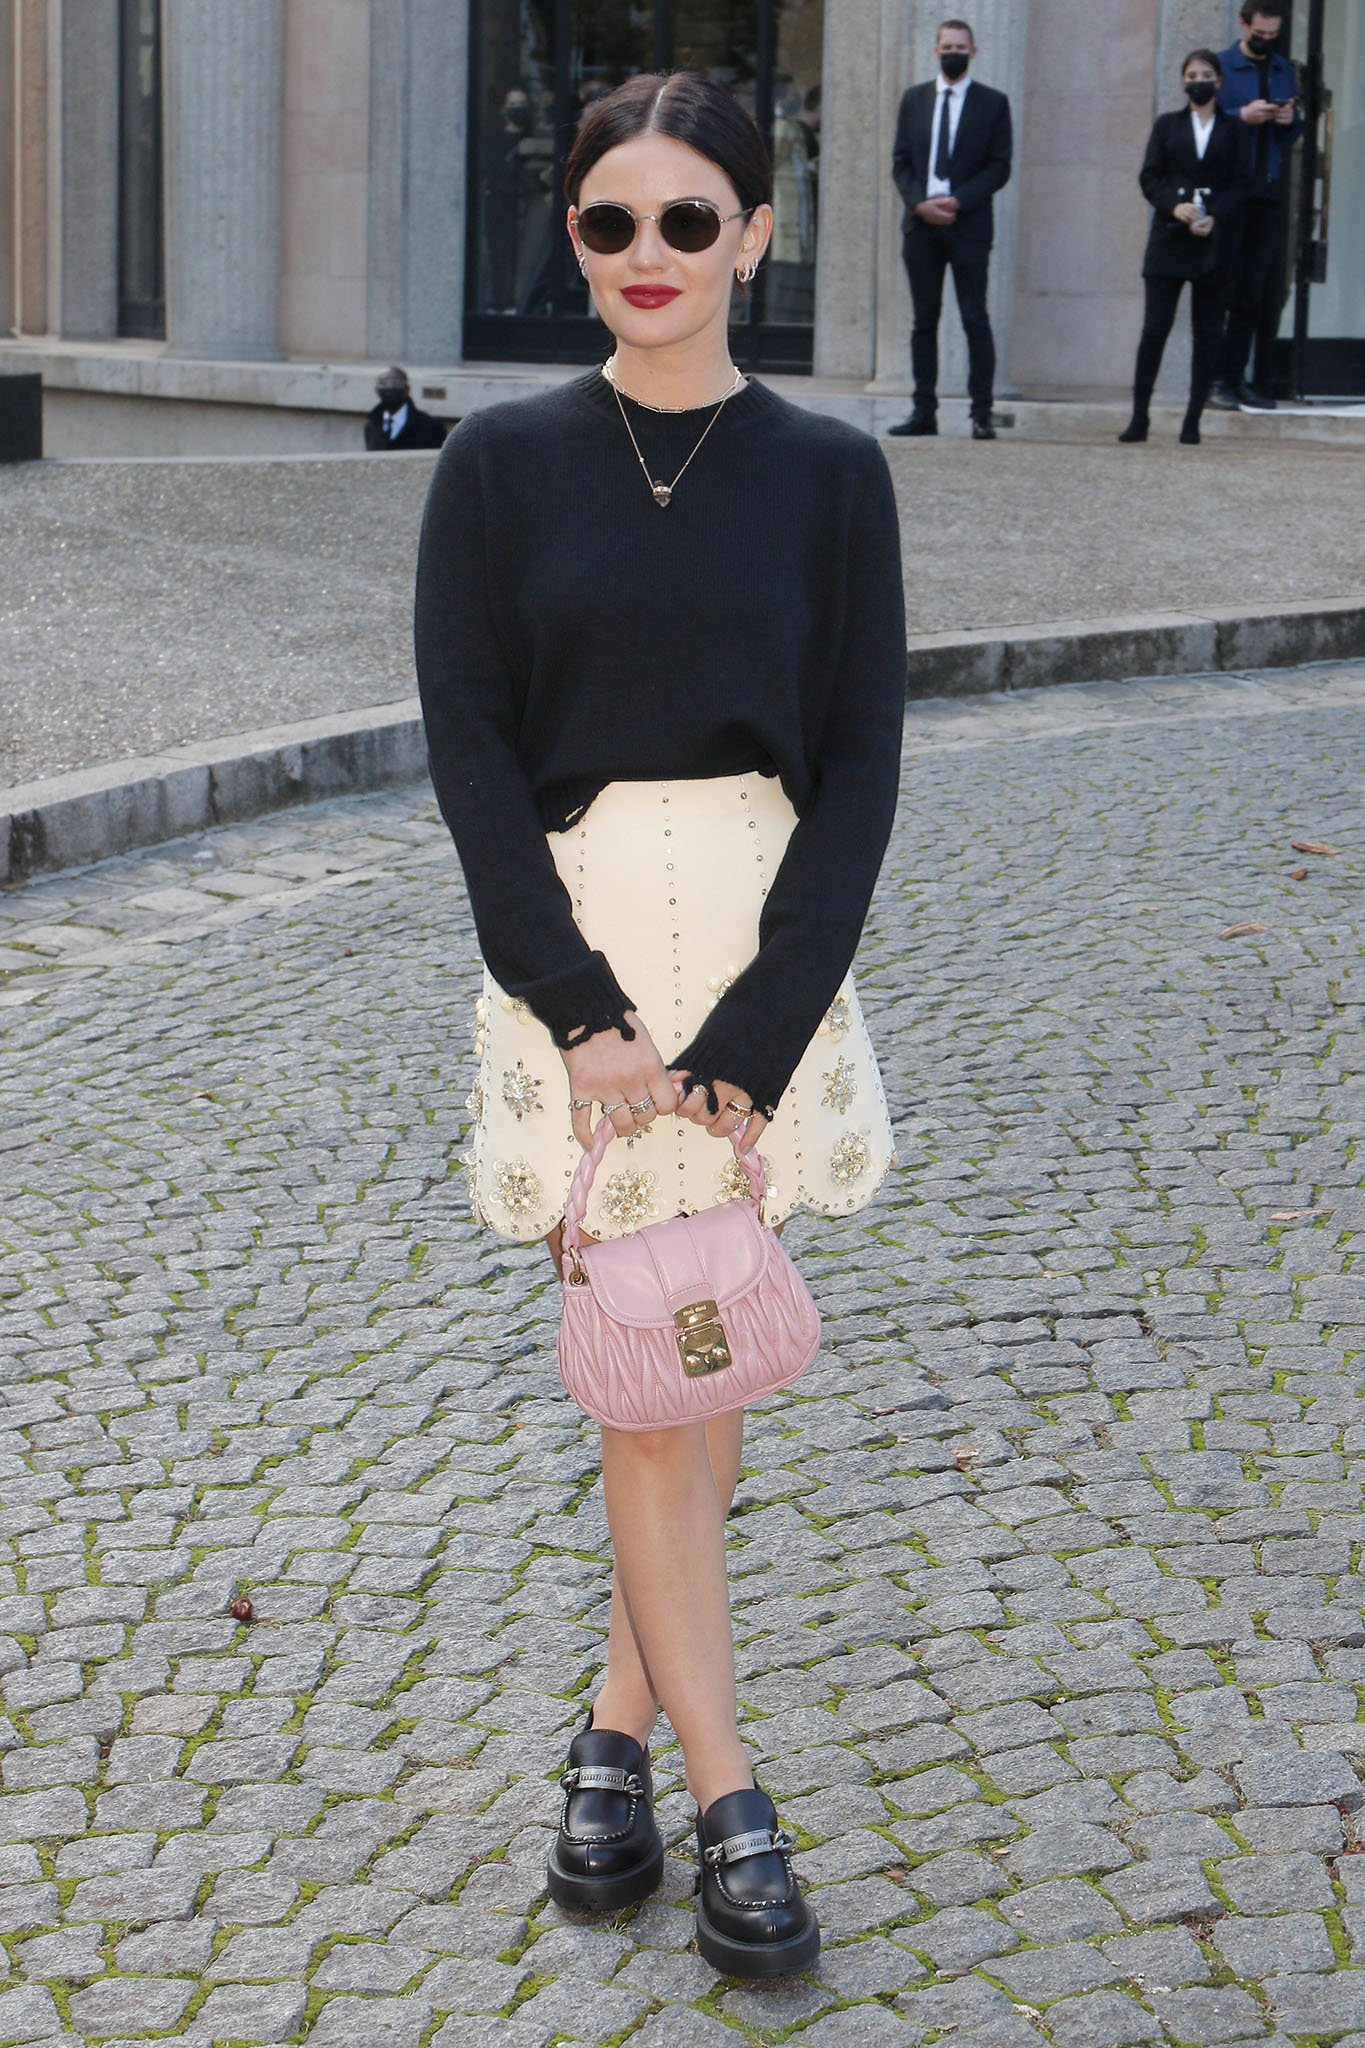 Lucy Hale shows off her legs in a Miu Miu embellished mini skirt and a distressed sweater